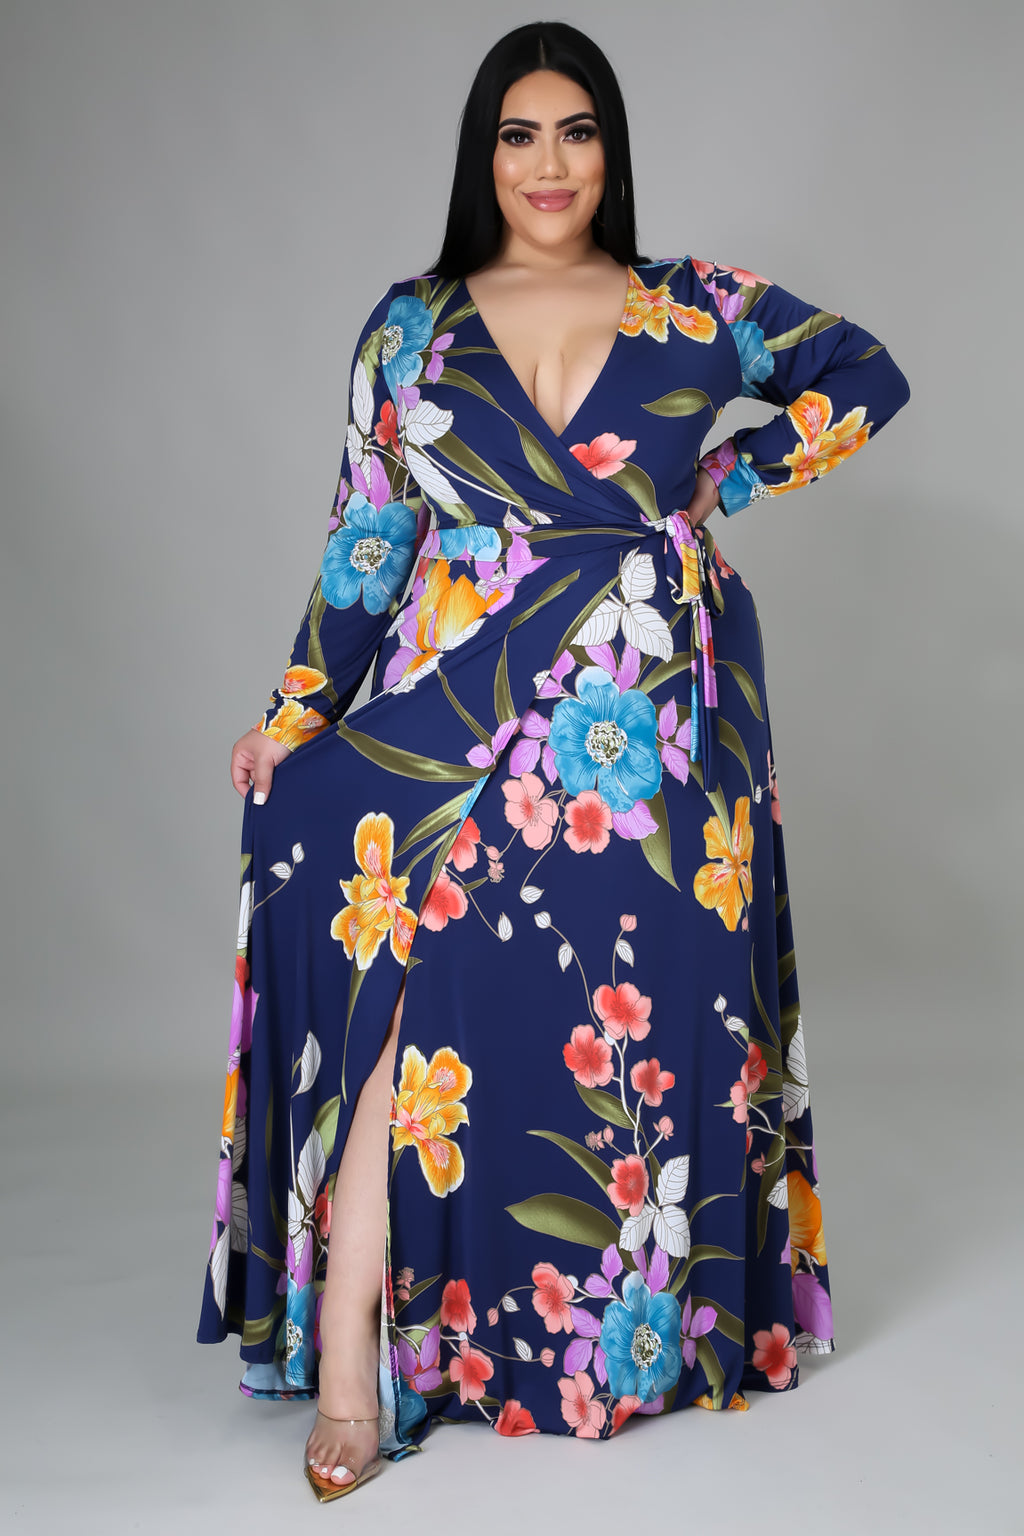 Floral Bloom Maxi Dress